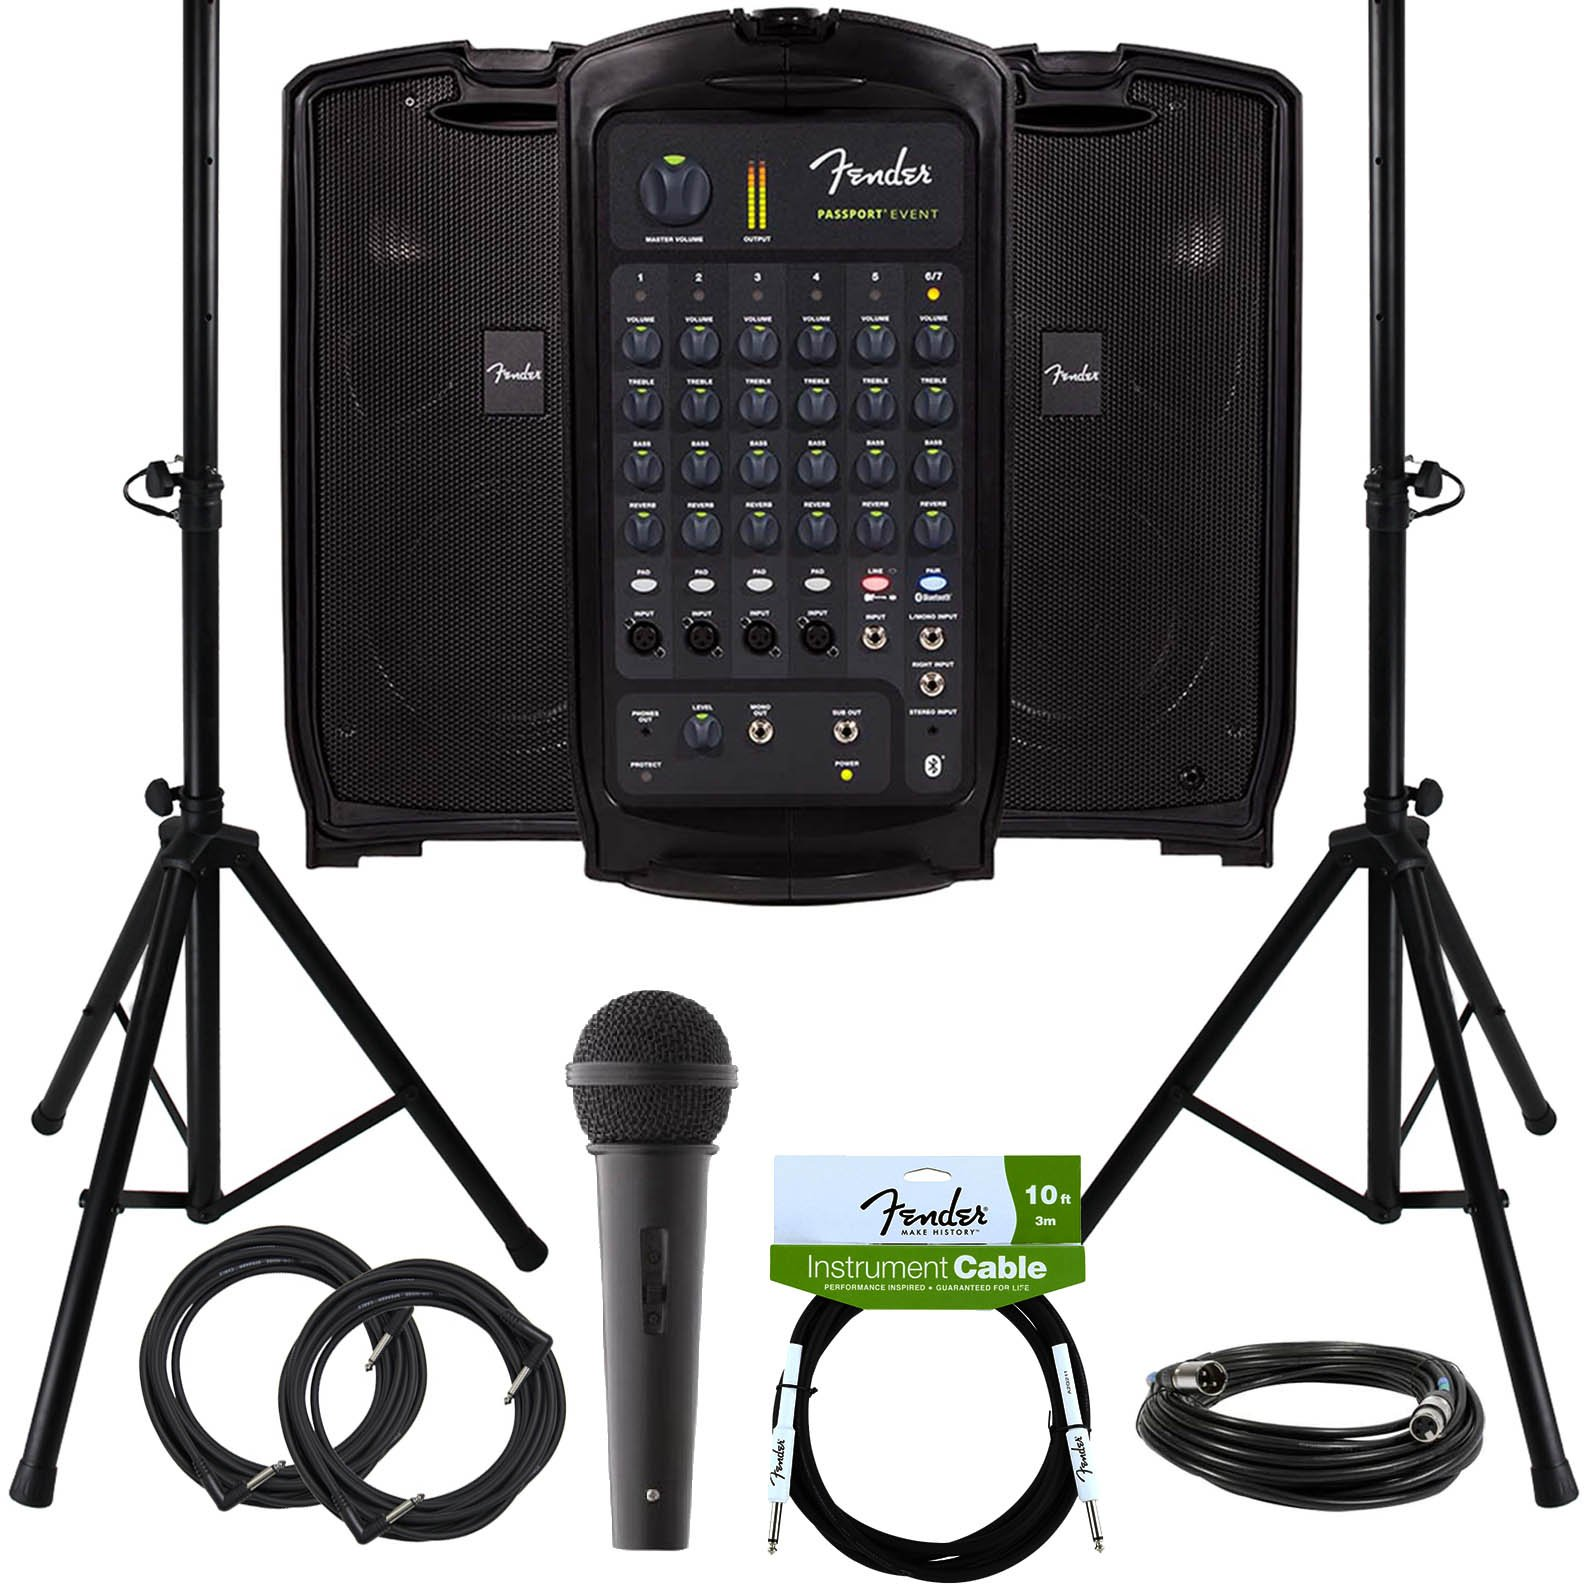 Fender Passport Event Portable PA System Bundle with Microphone, Compact Speaker Stands, XLR Cable, and Instrument Cable